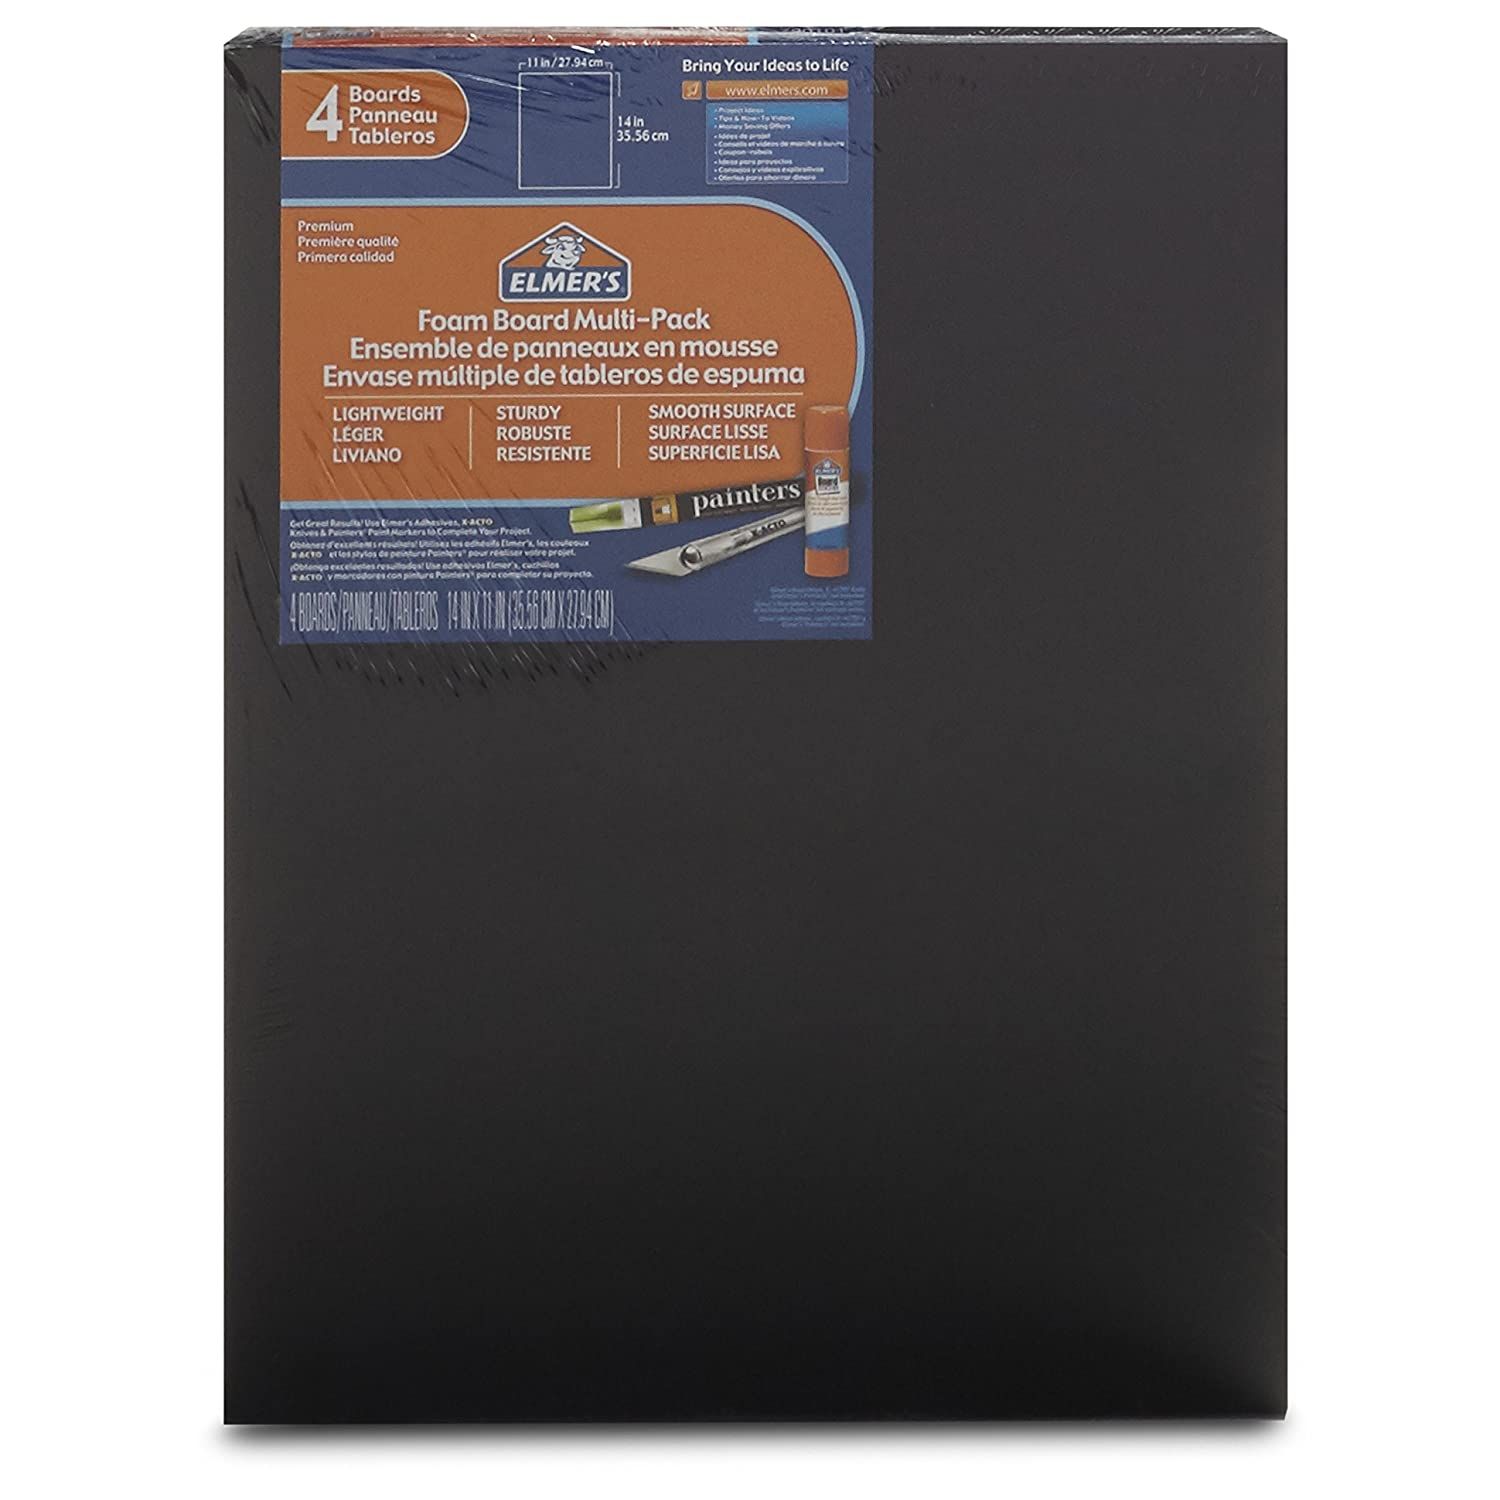 Elmer's Foam Boards, 11 x 14 Inches, Black/Black Core, 4-Count (950024) Elmer' s Foam Boards Elmers